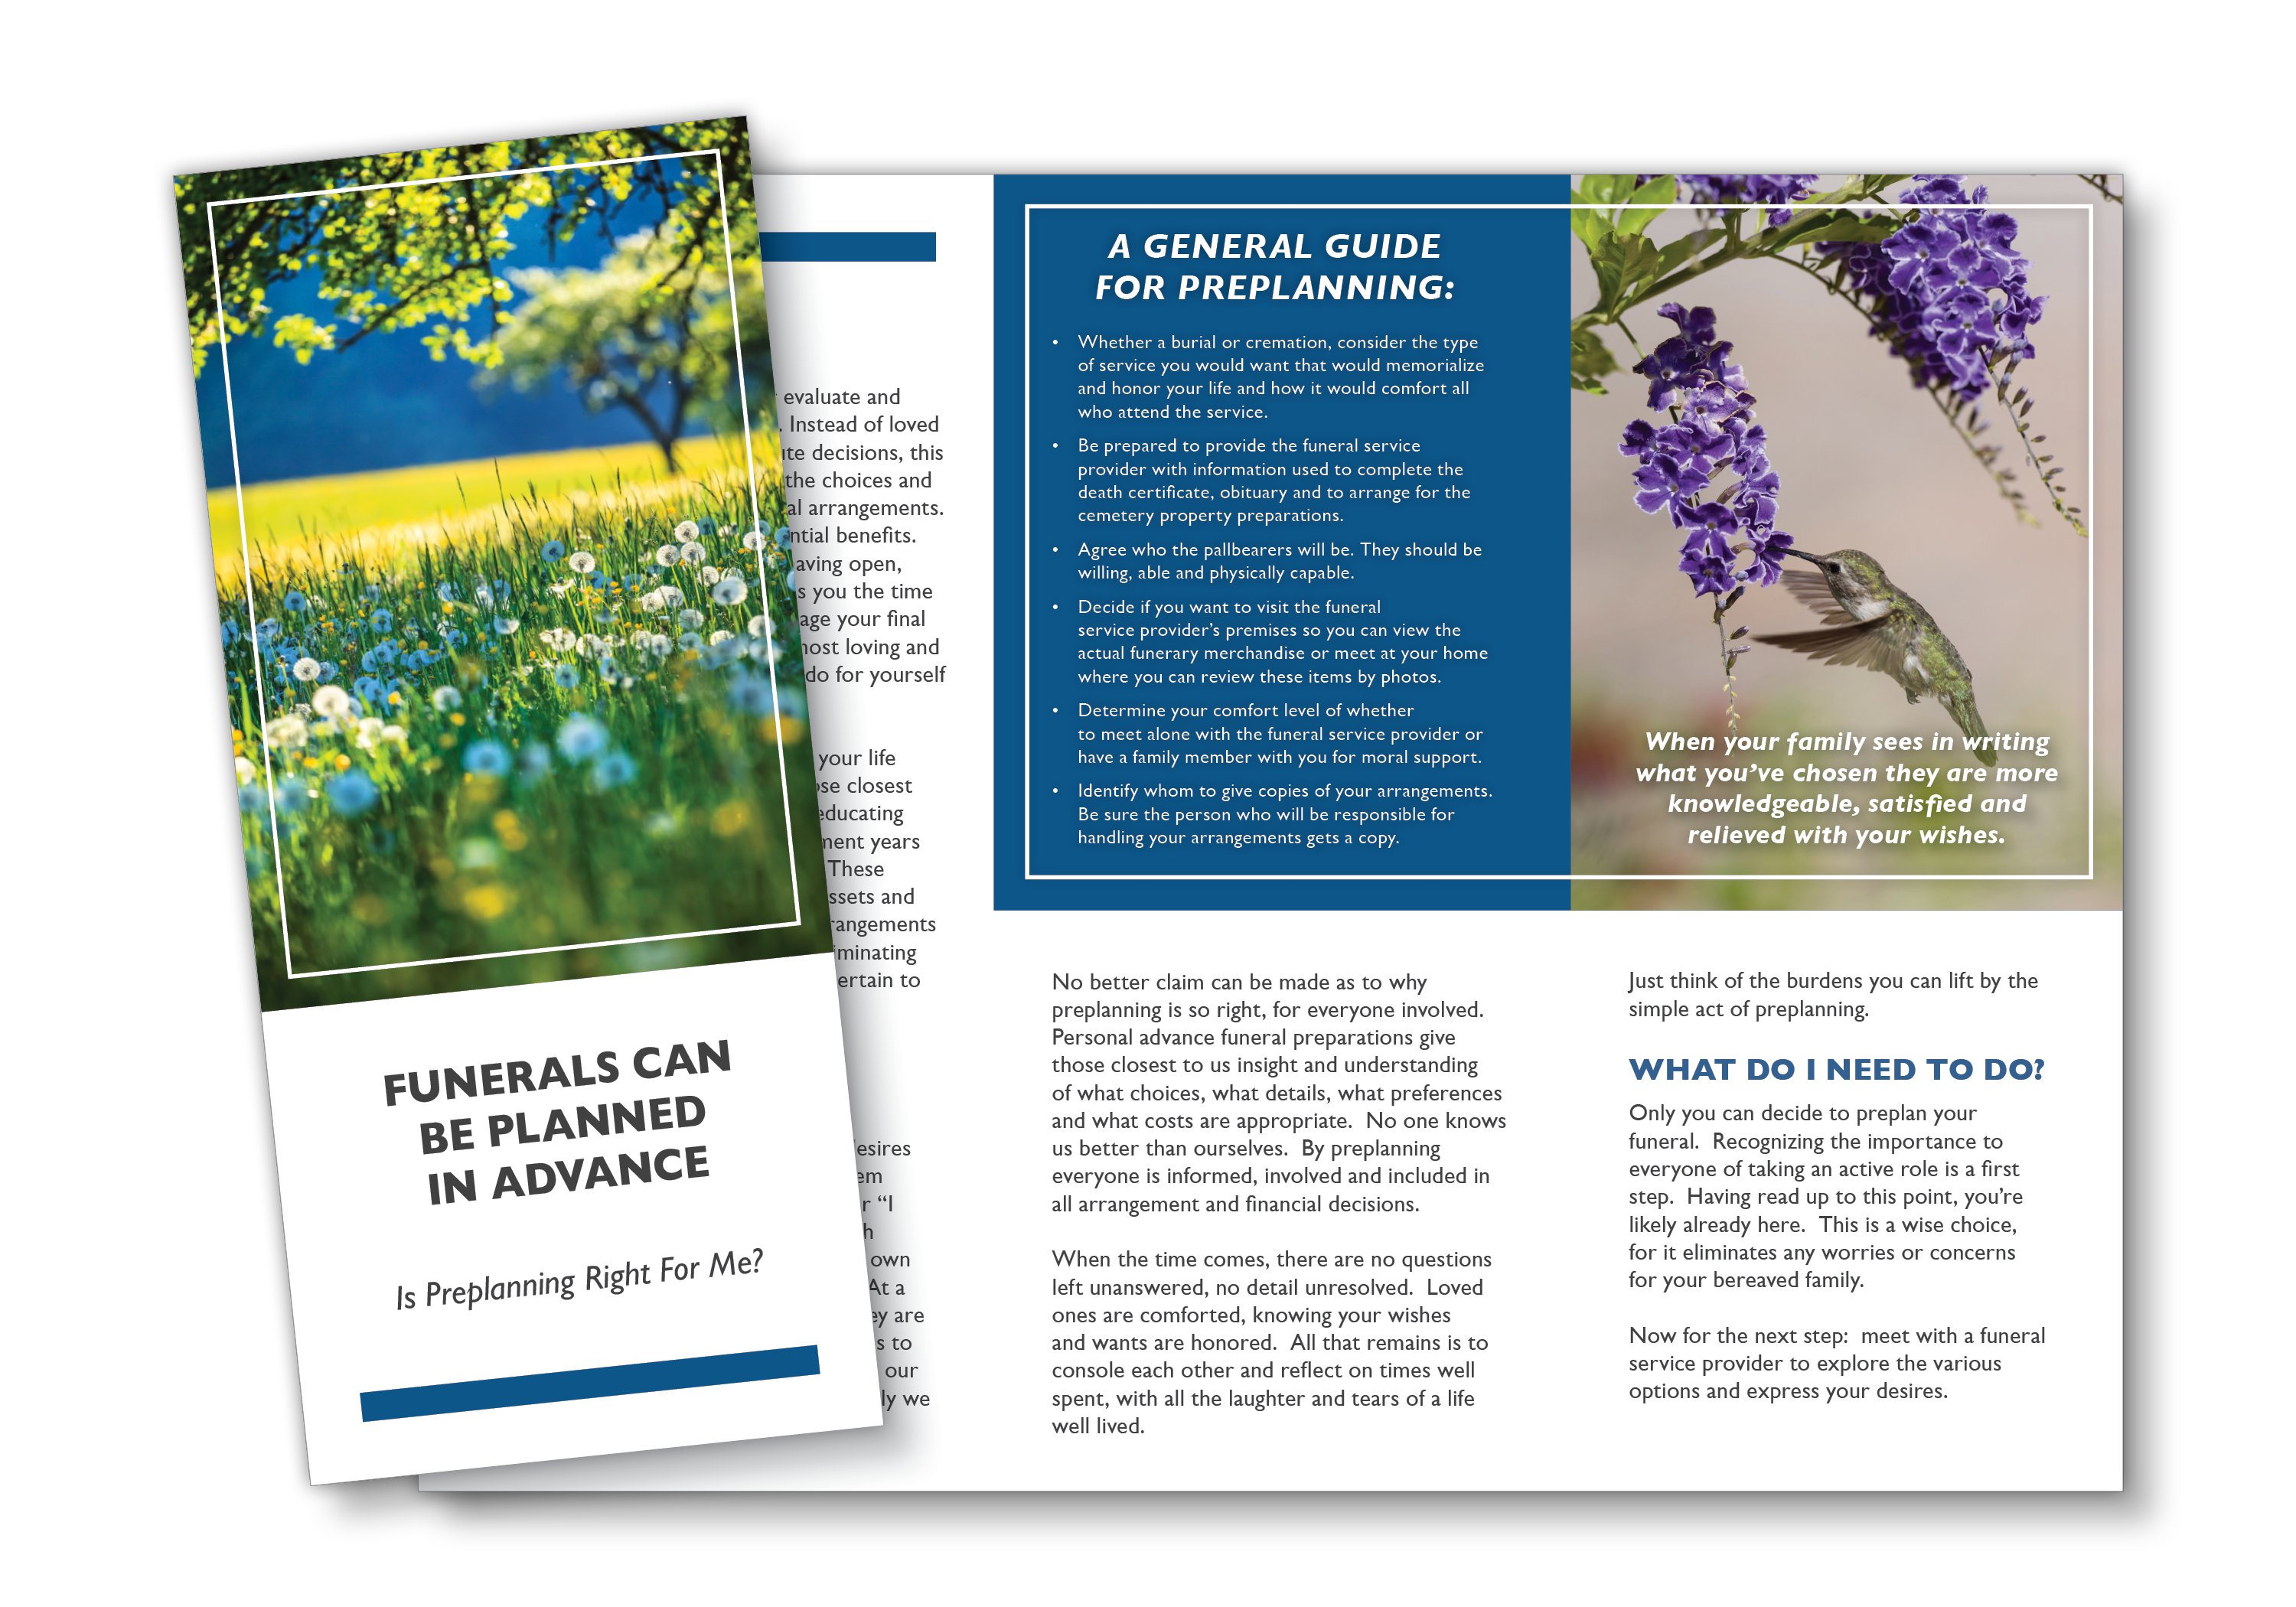 Preplanning Brochure - Funerals Can Be Planned In Advance